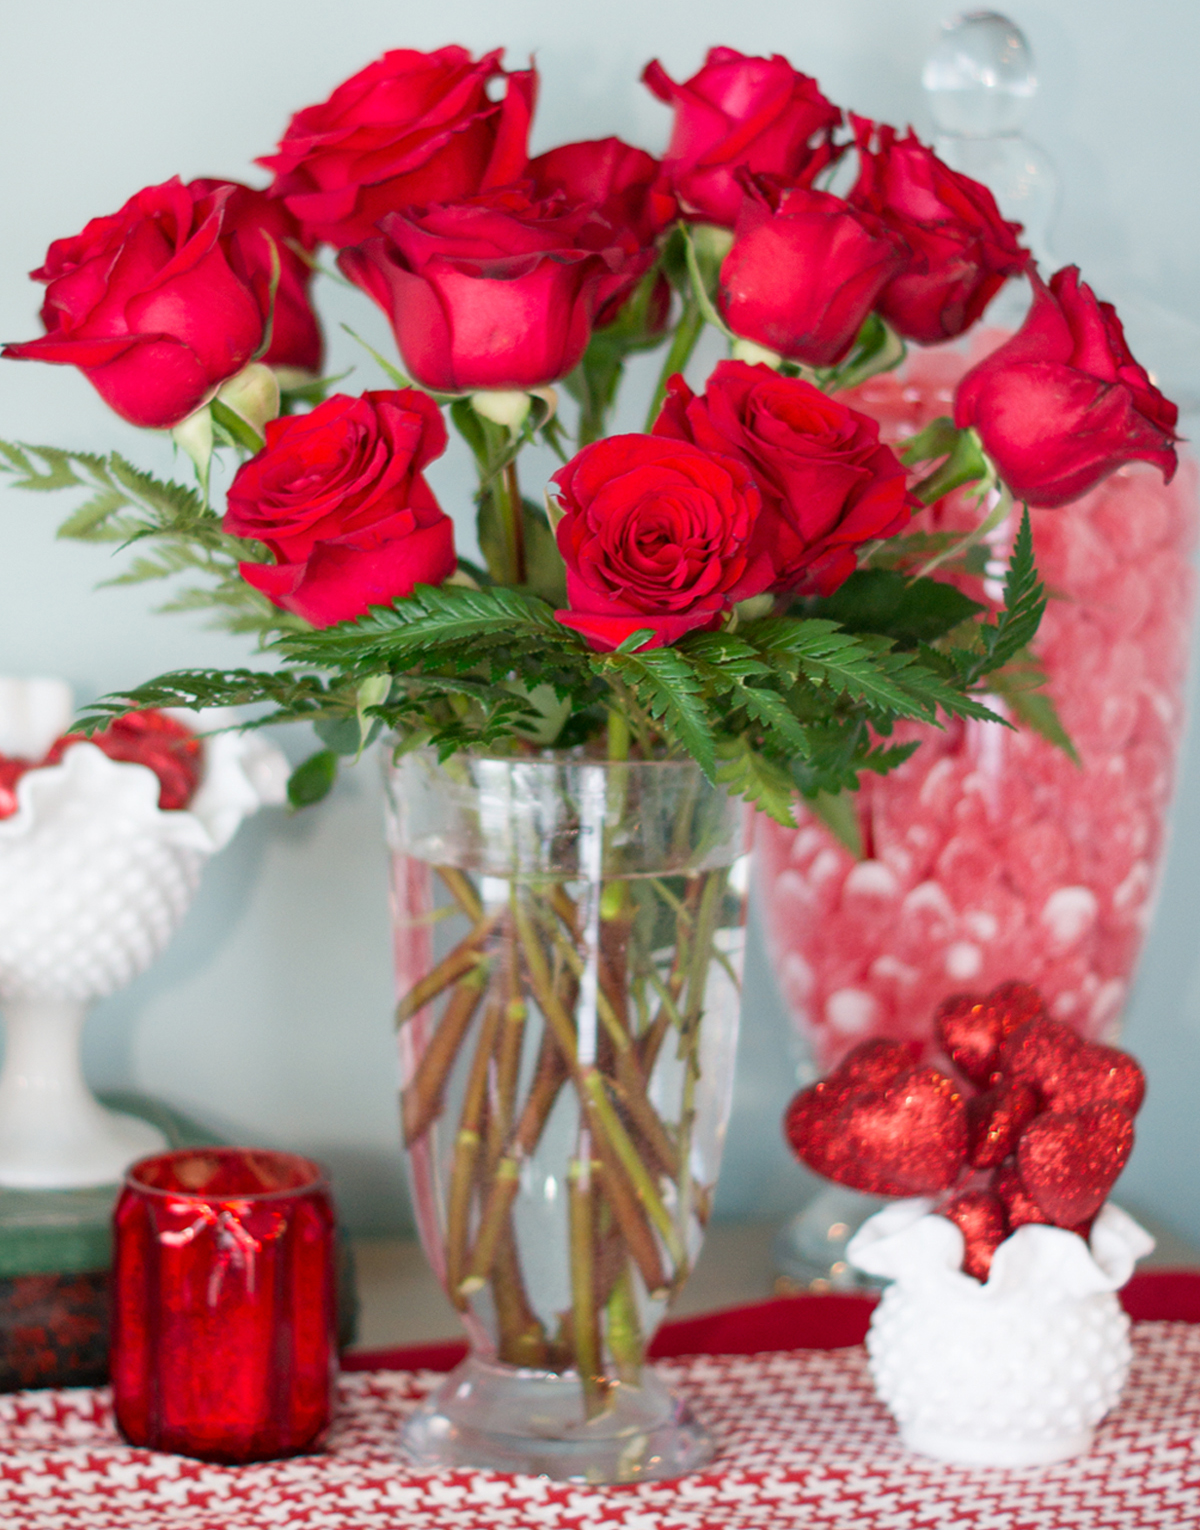 How to arrange flowers in a vase the florist way